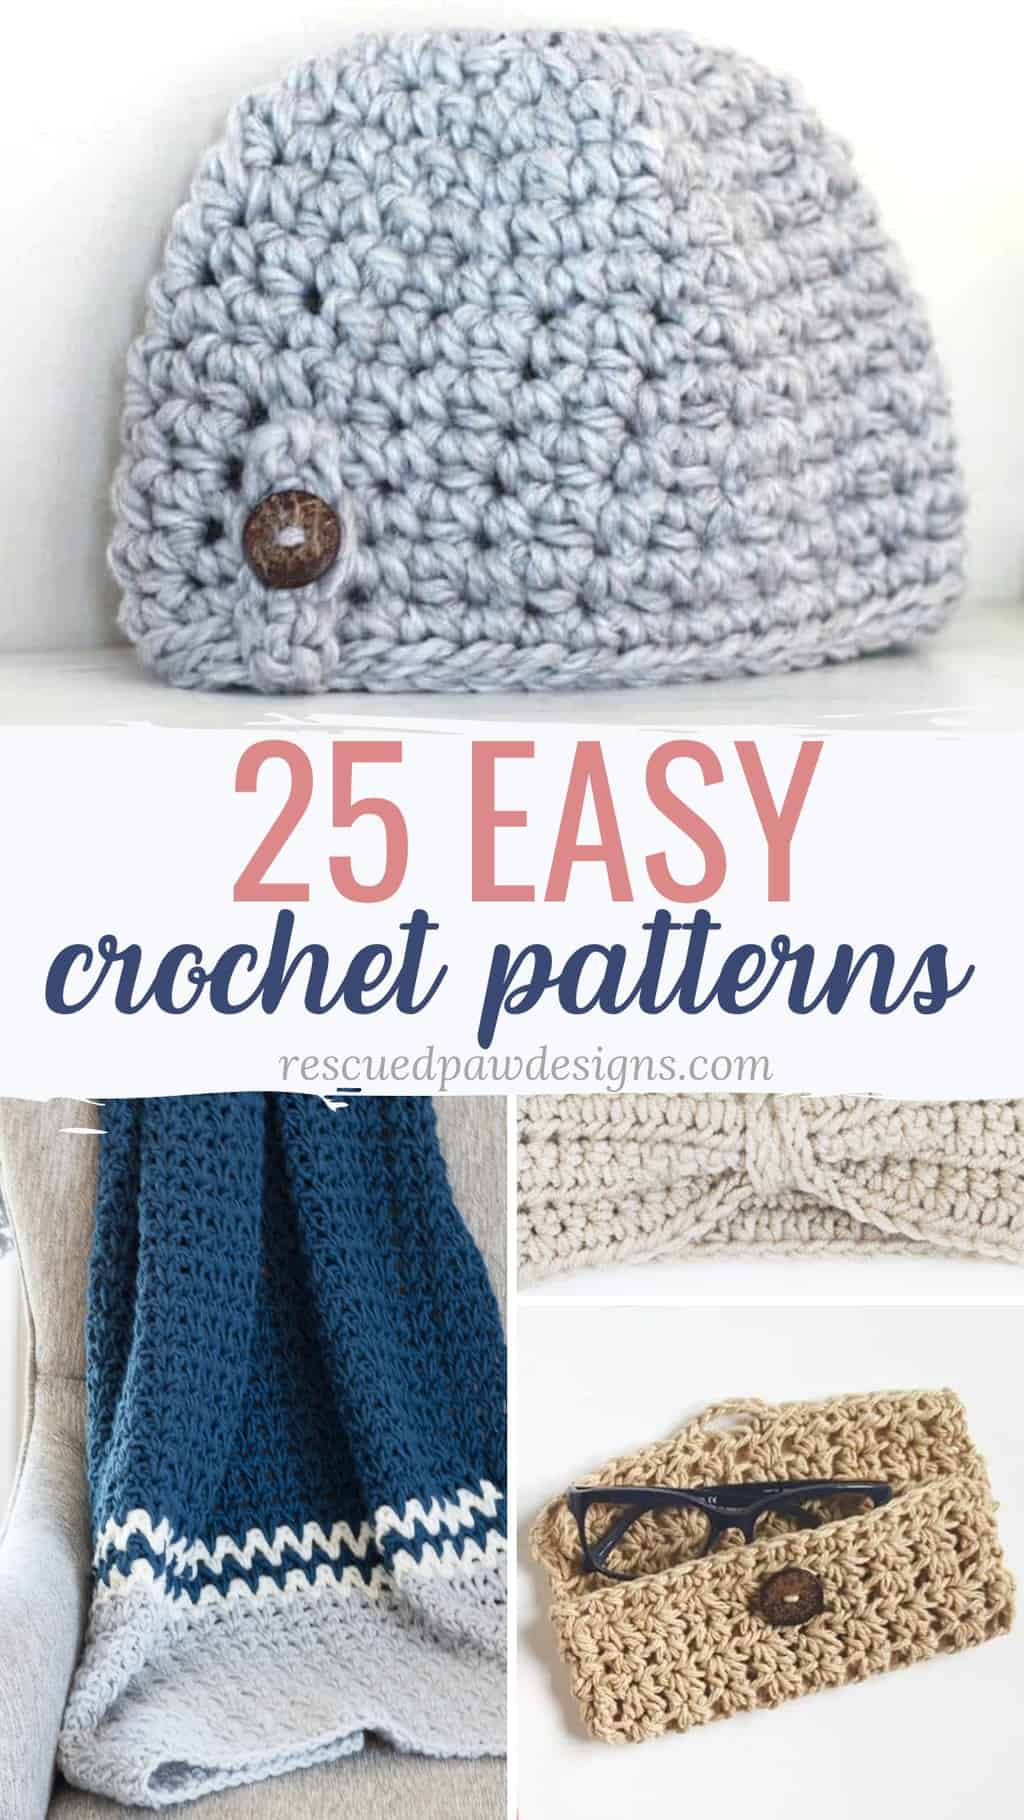 Twenty-five quick & easy crochet patterns that you can crochet. Great for beginners or someone who wants to crochet a fast project. List from Rescuedpawdesigns.com #easycrochetpatterns #beginnereasypatterns #freecrochetpatterns via @rescuedpaw